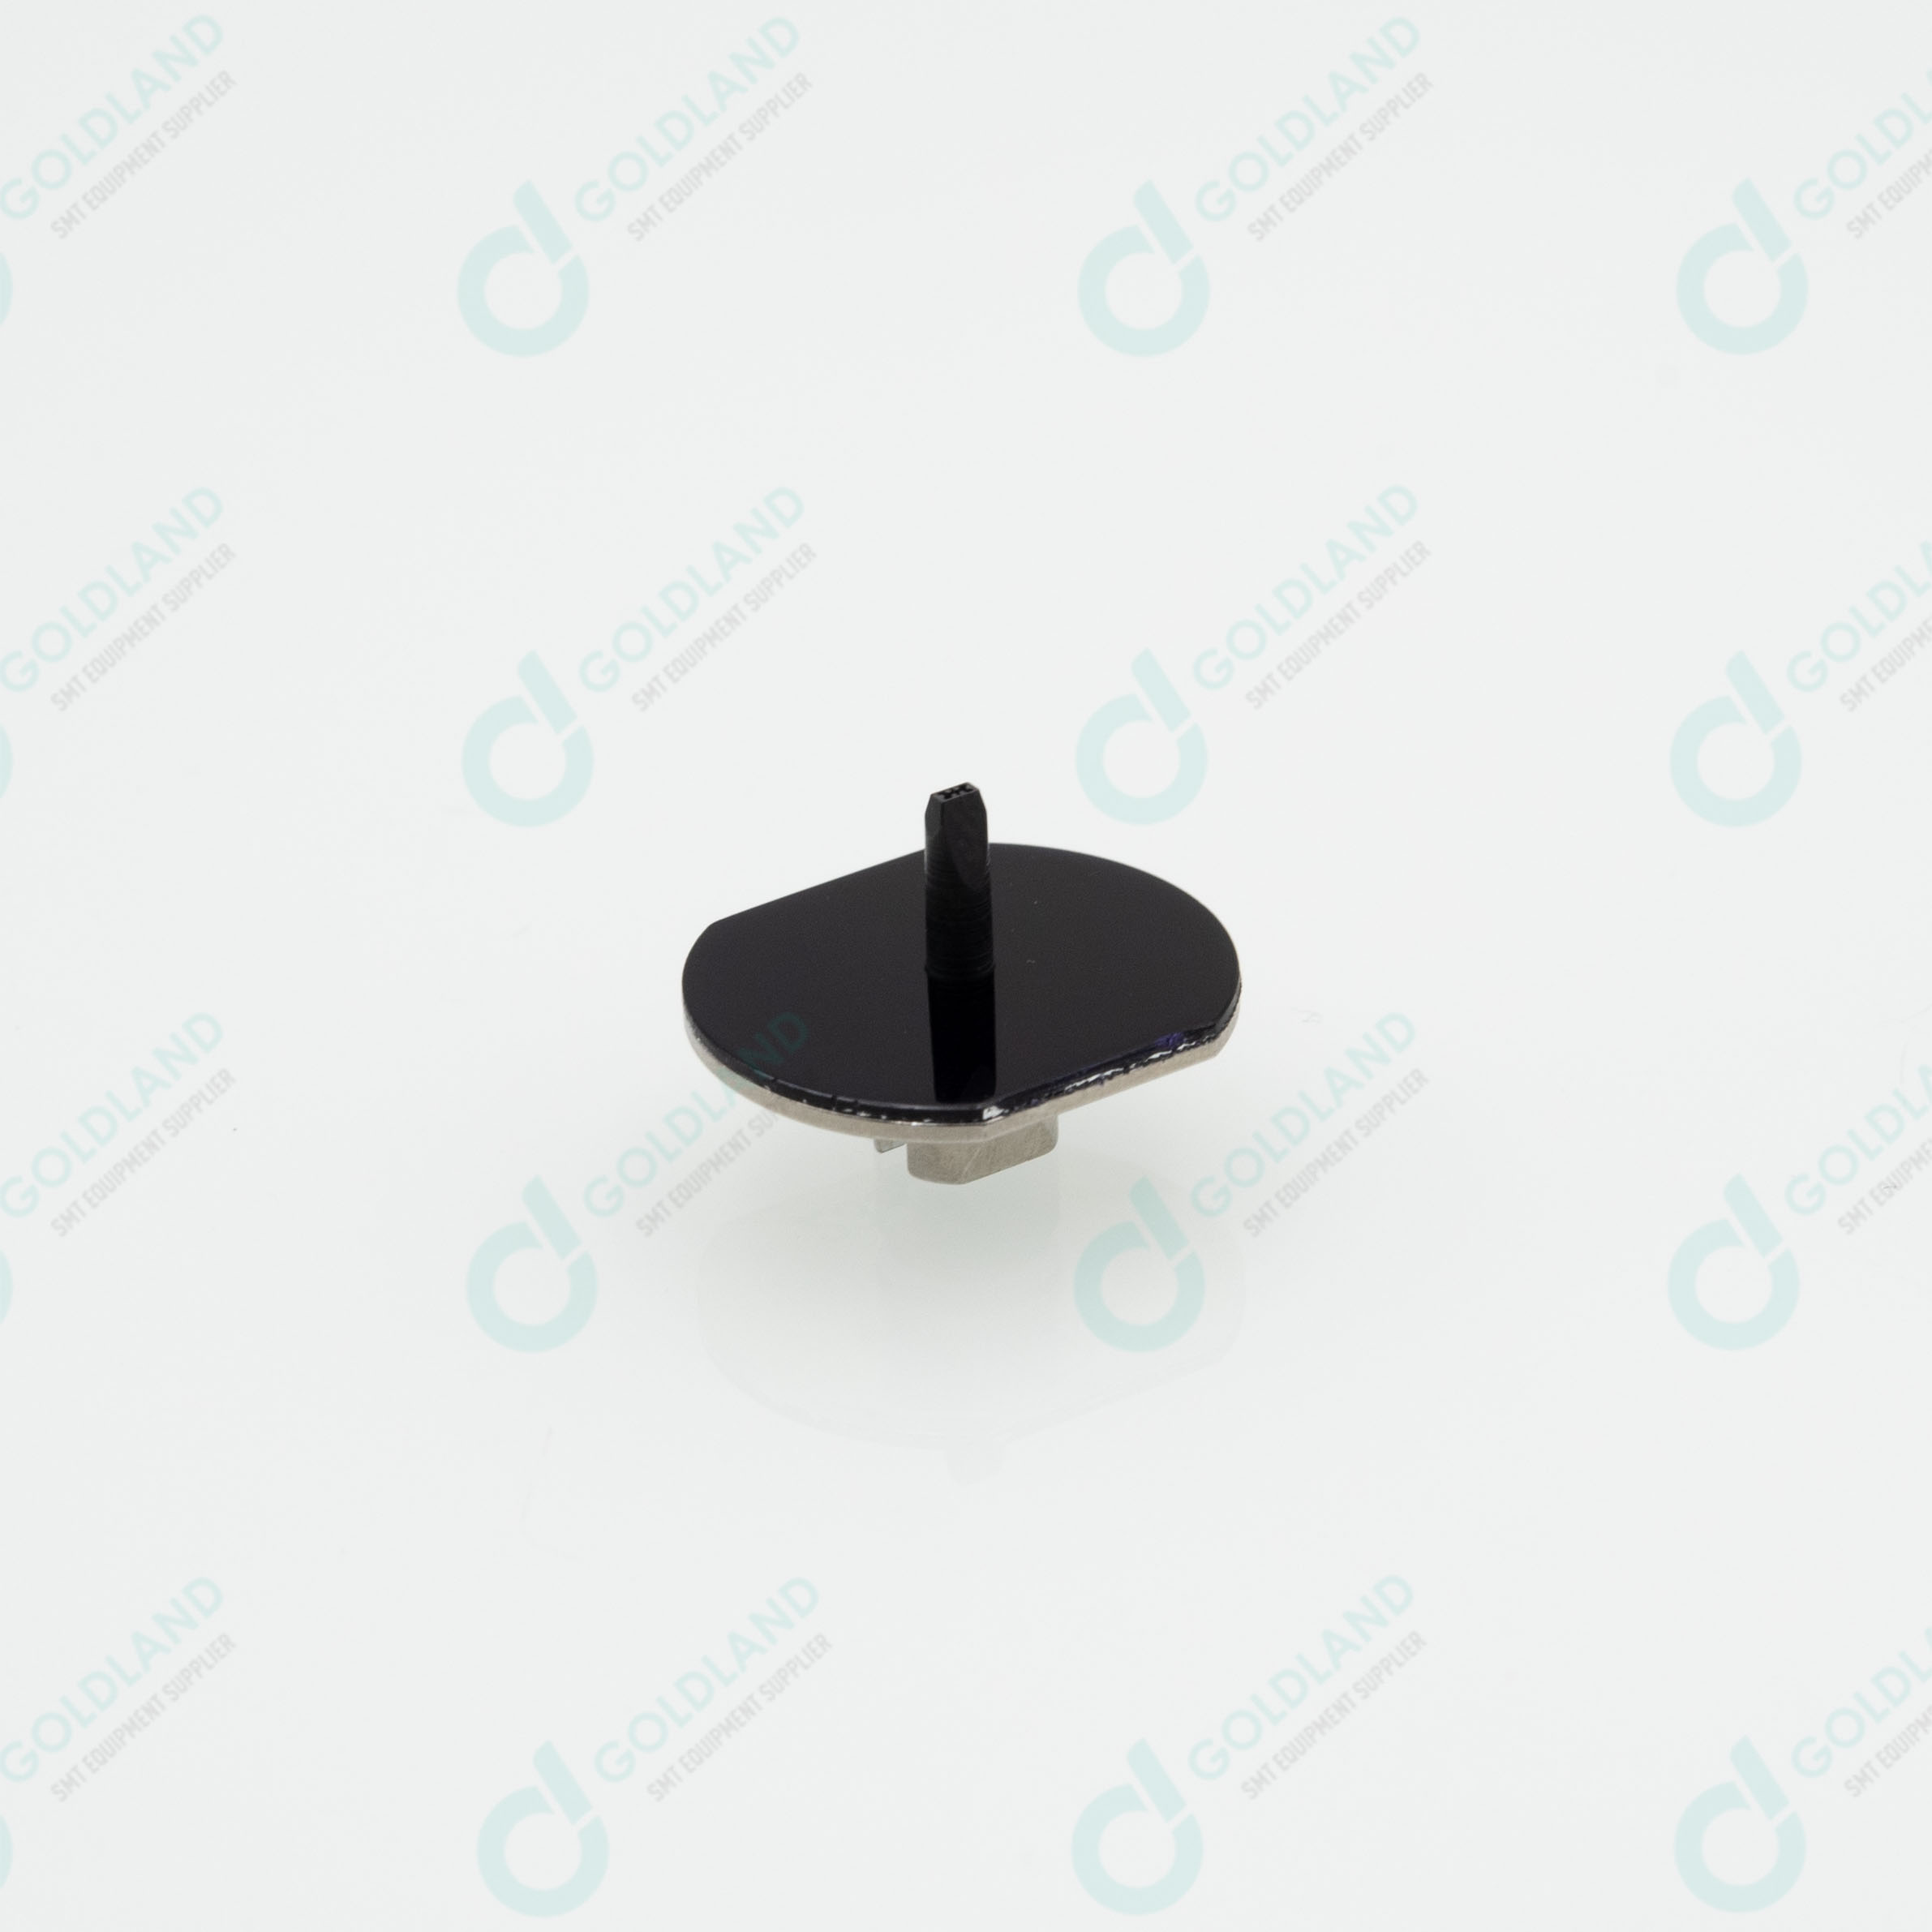 N610043814AD Panasonic 235C Nozzle for Panasonic smt machine parts